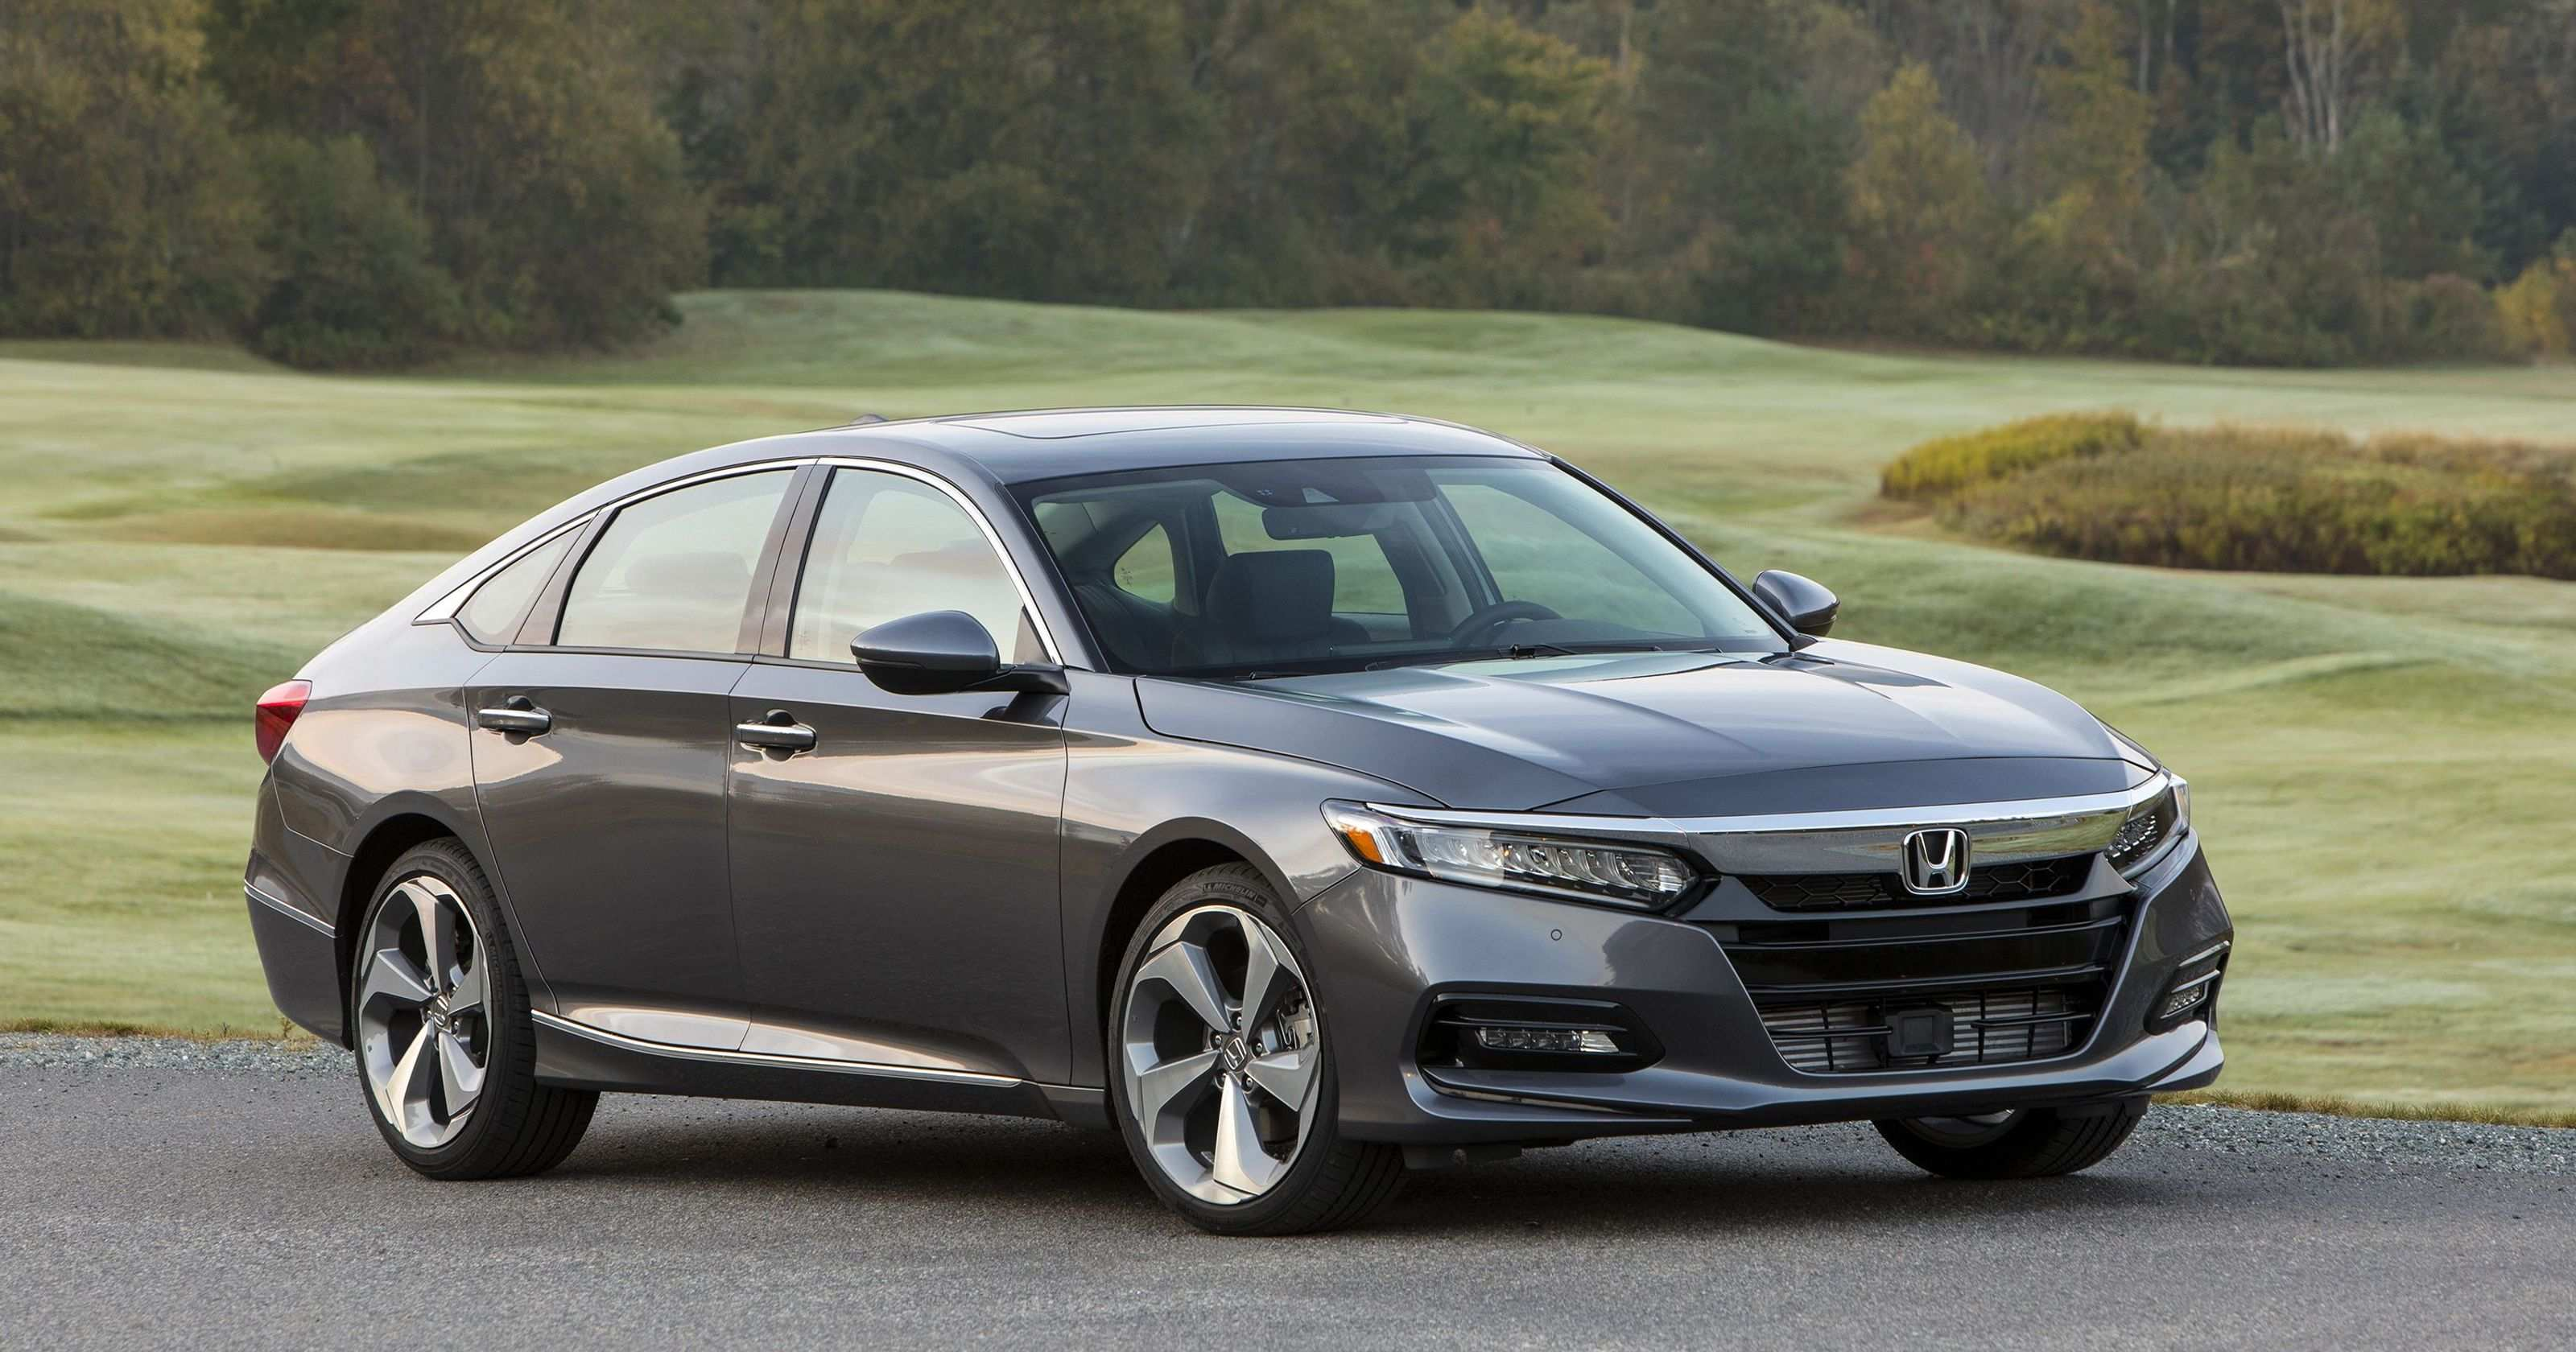 25 Great New Honda Accord Hybrid 2019 Price And Release Date Price and Review for New Honda Accord Hybrid 2019 Price And Release Date